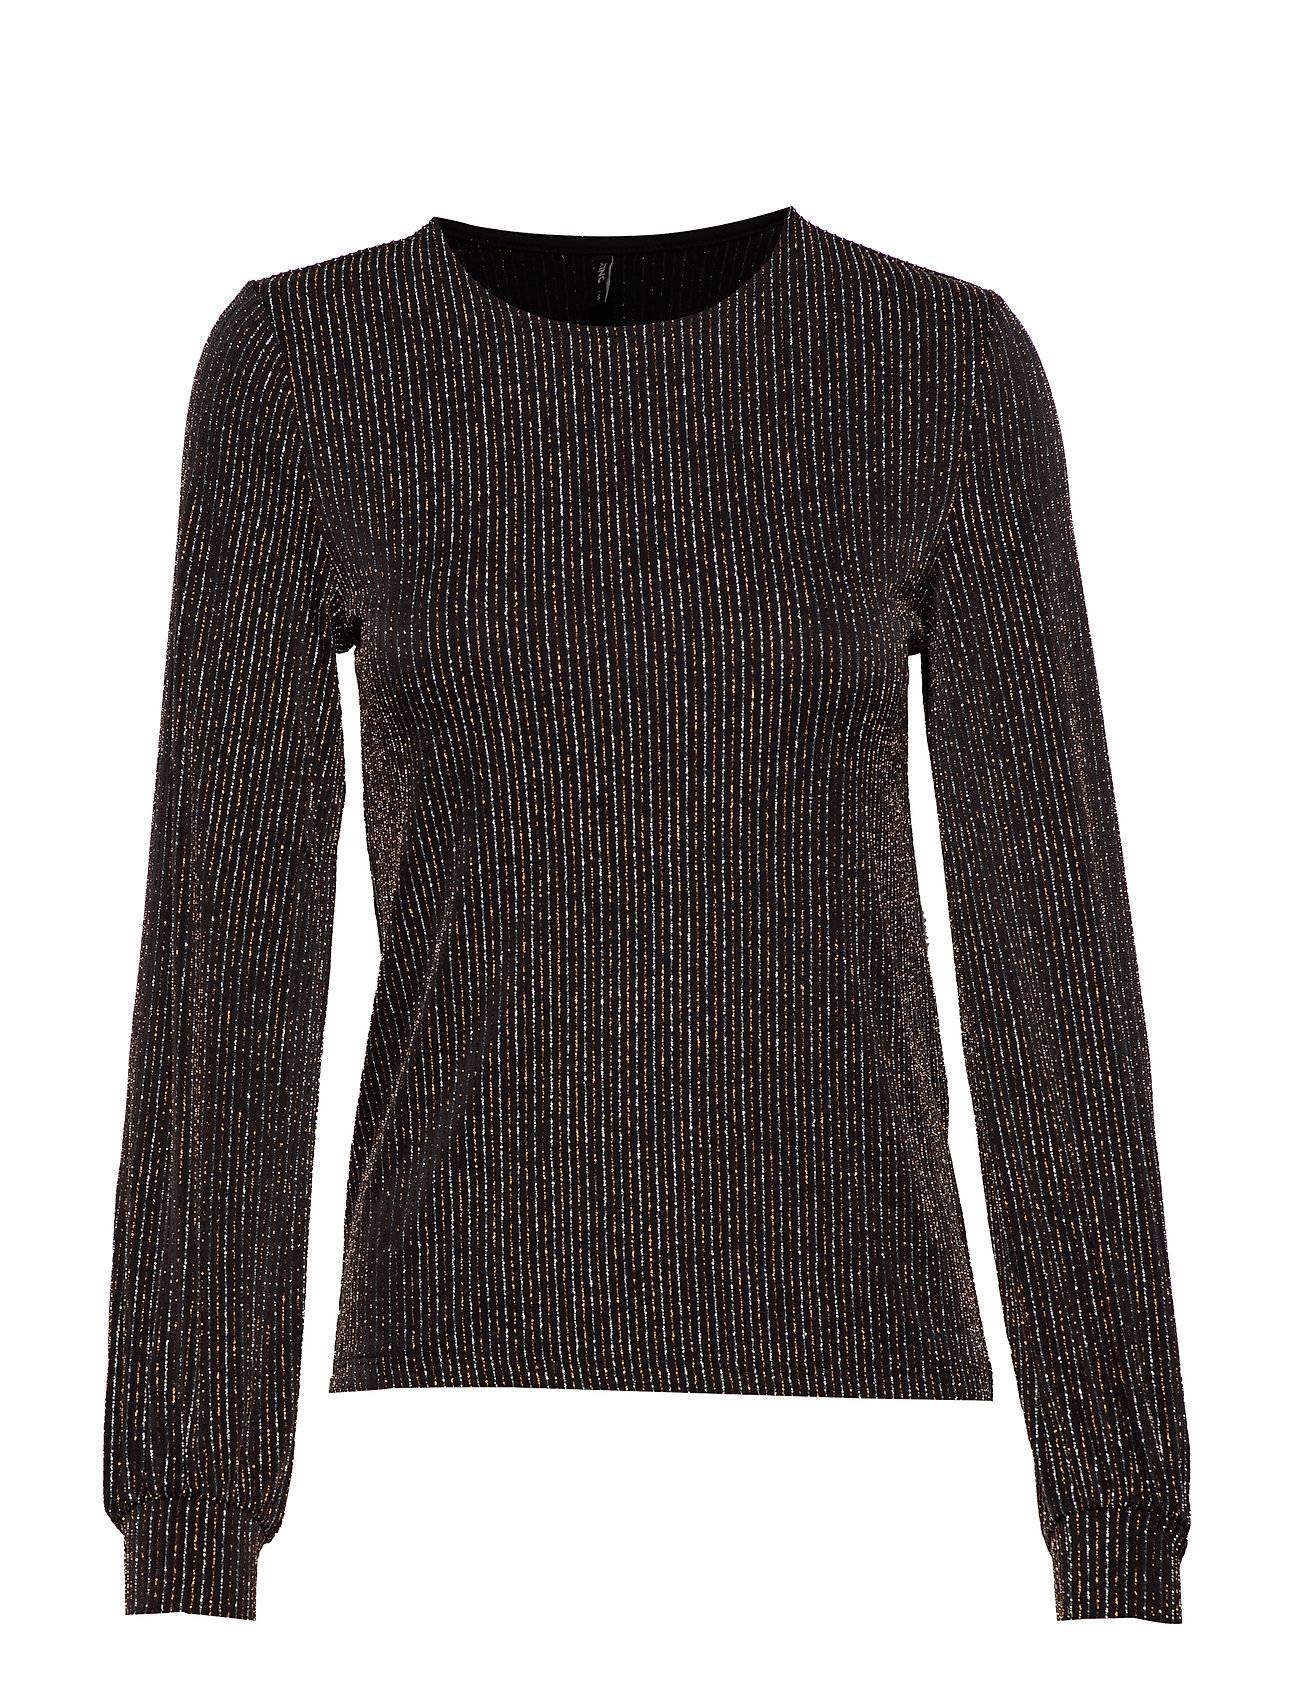 Image of ONLY Onlcarol L/S Glitter O-Neck Top Jrs Neulepaita Musta ONLY